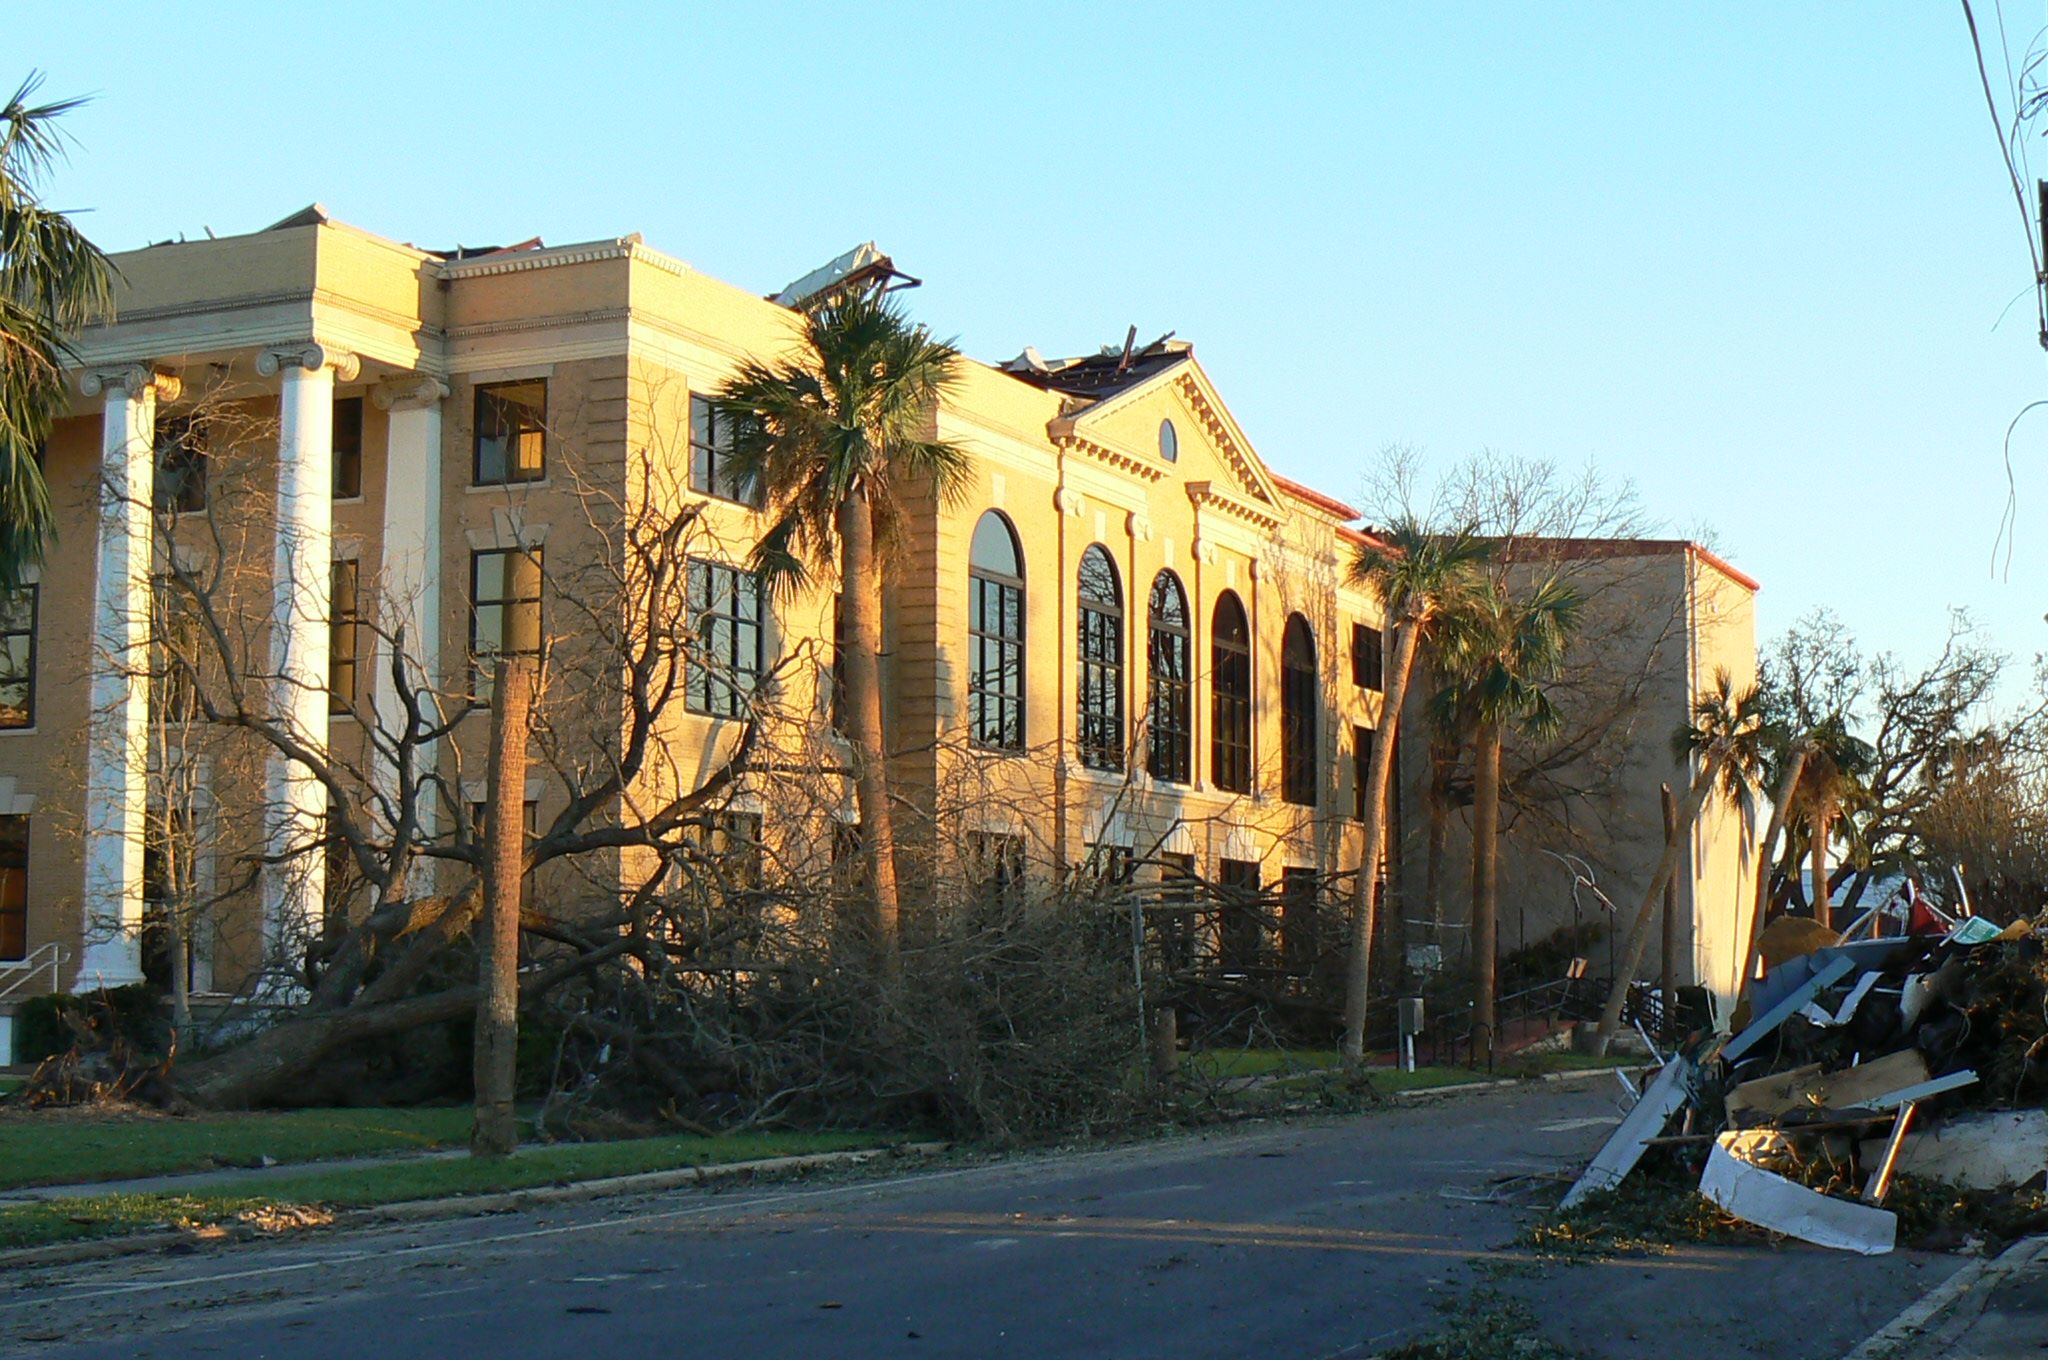 Bay County Courthouse in Panama City, Florida